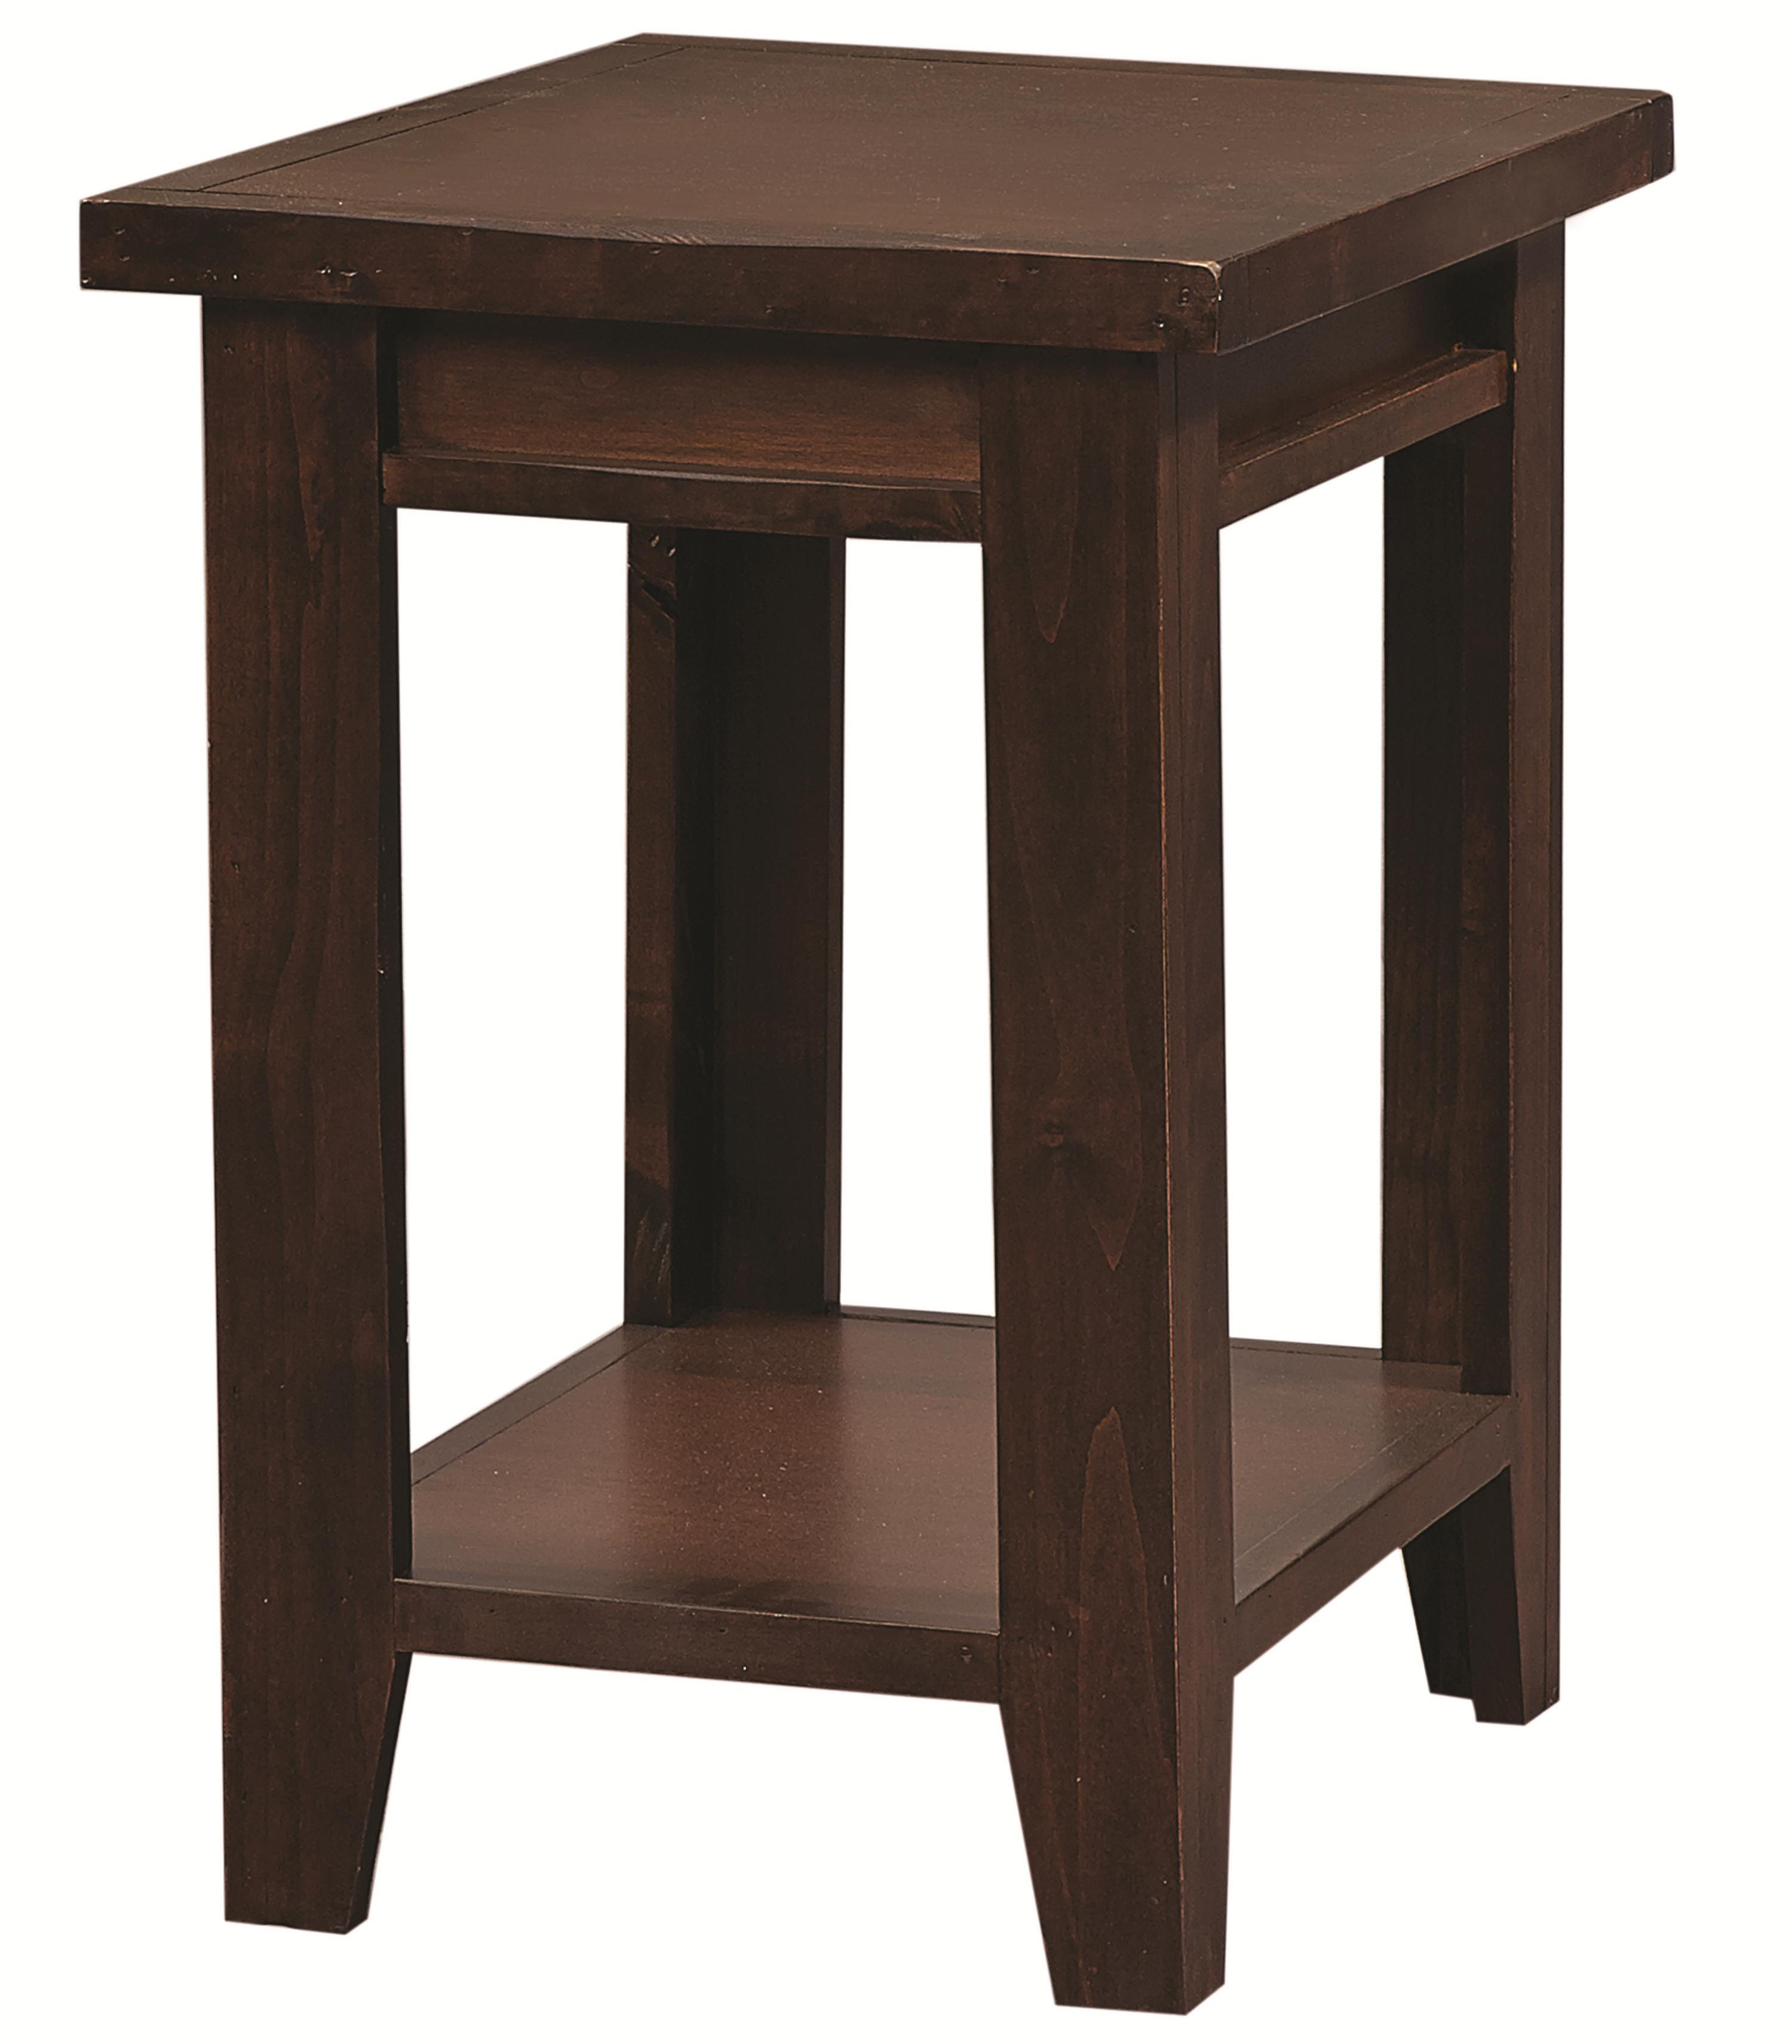 Alder Grove Chairside Table by Aspenhome at Walker's Furniture